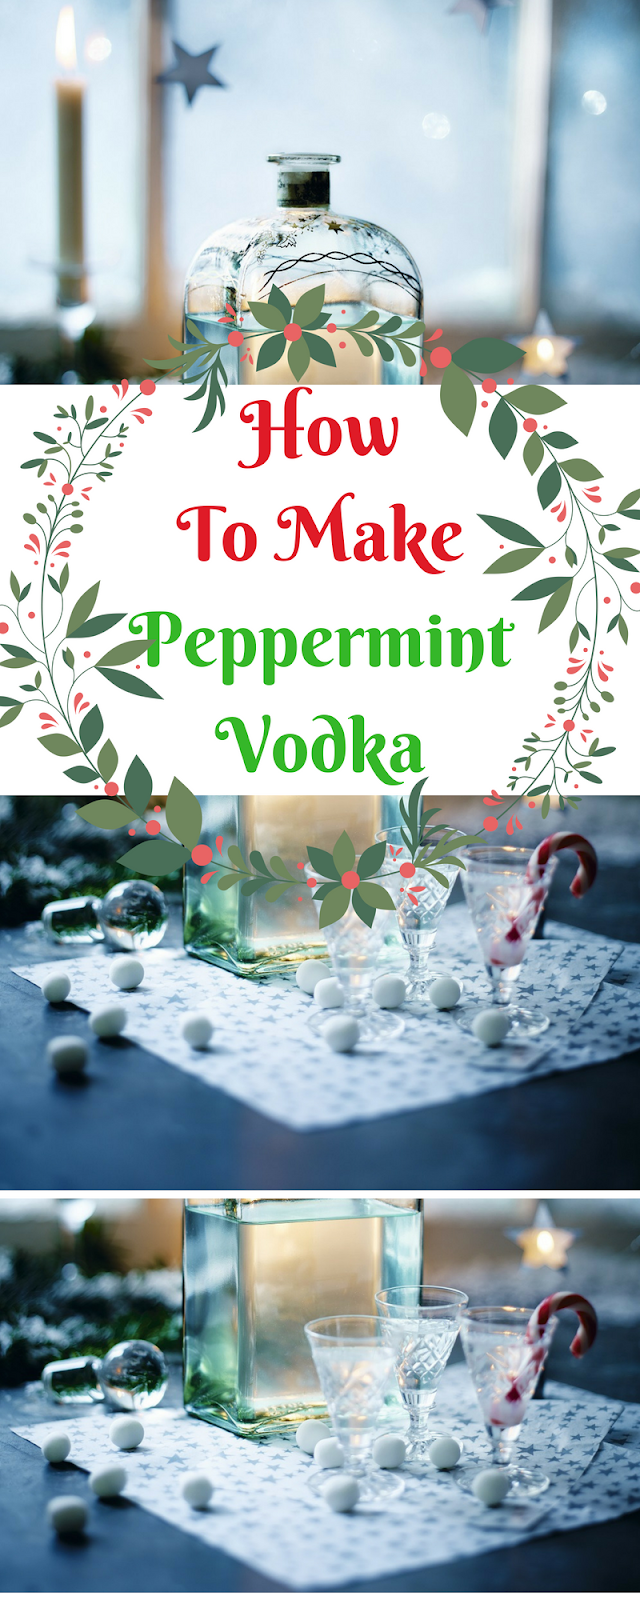 How To Make Peppermint Vodka